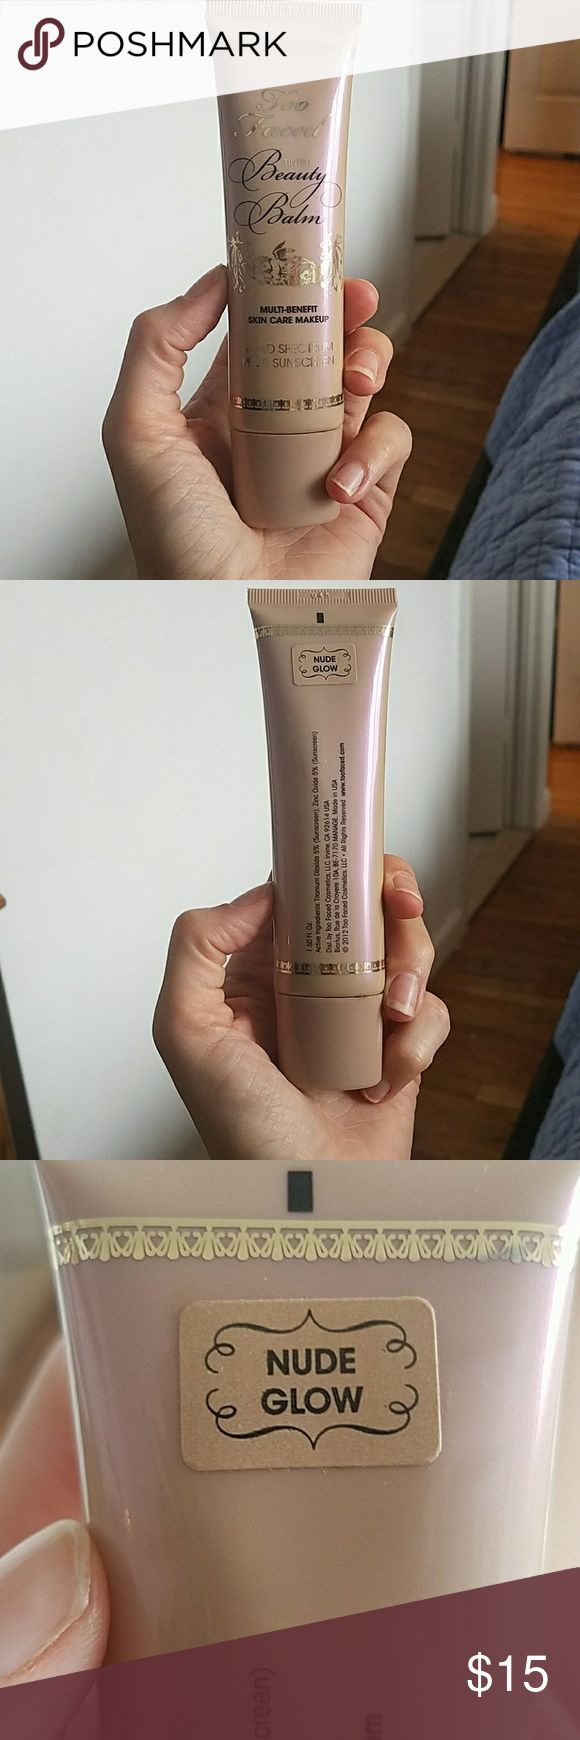 Too Faced BB Cream Too Faced Beauty Balm ( 25% used) Color: Nude Glow SPF20 Too Faced Makeup